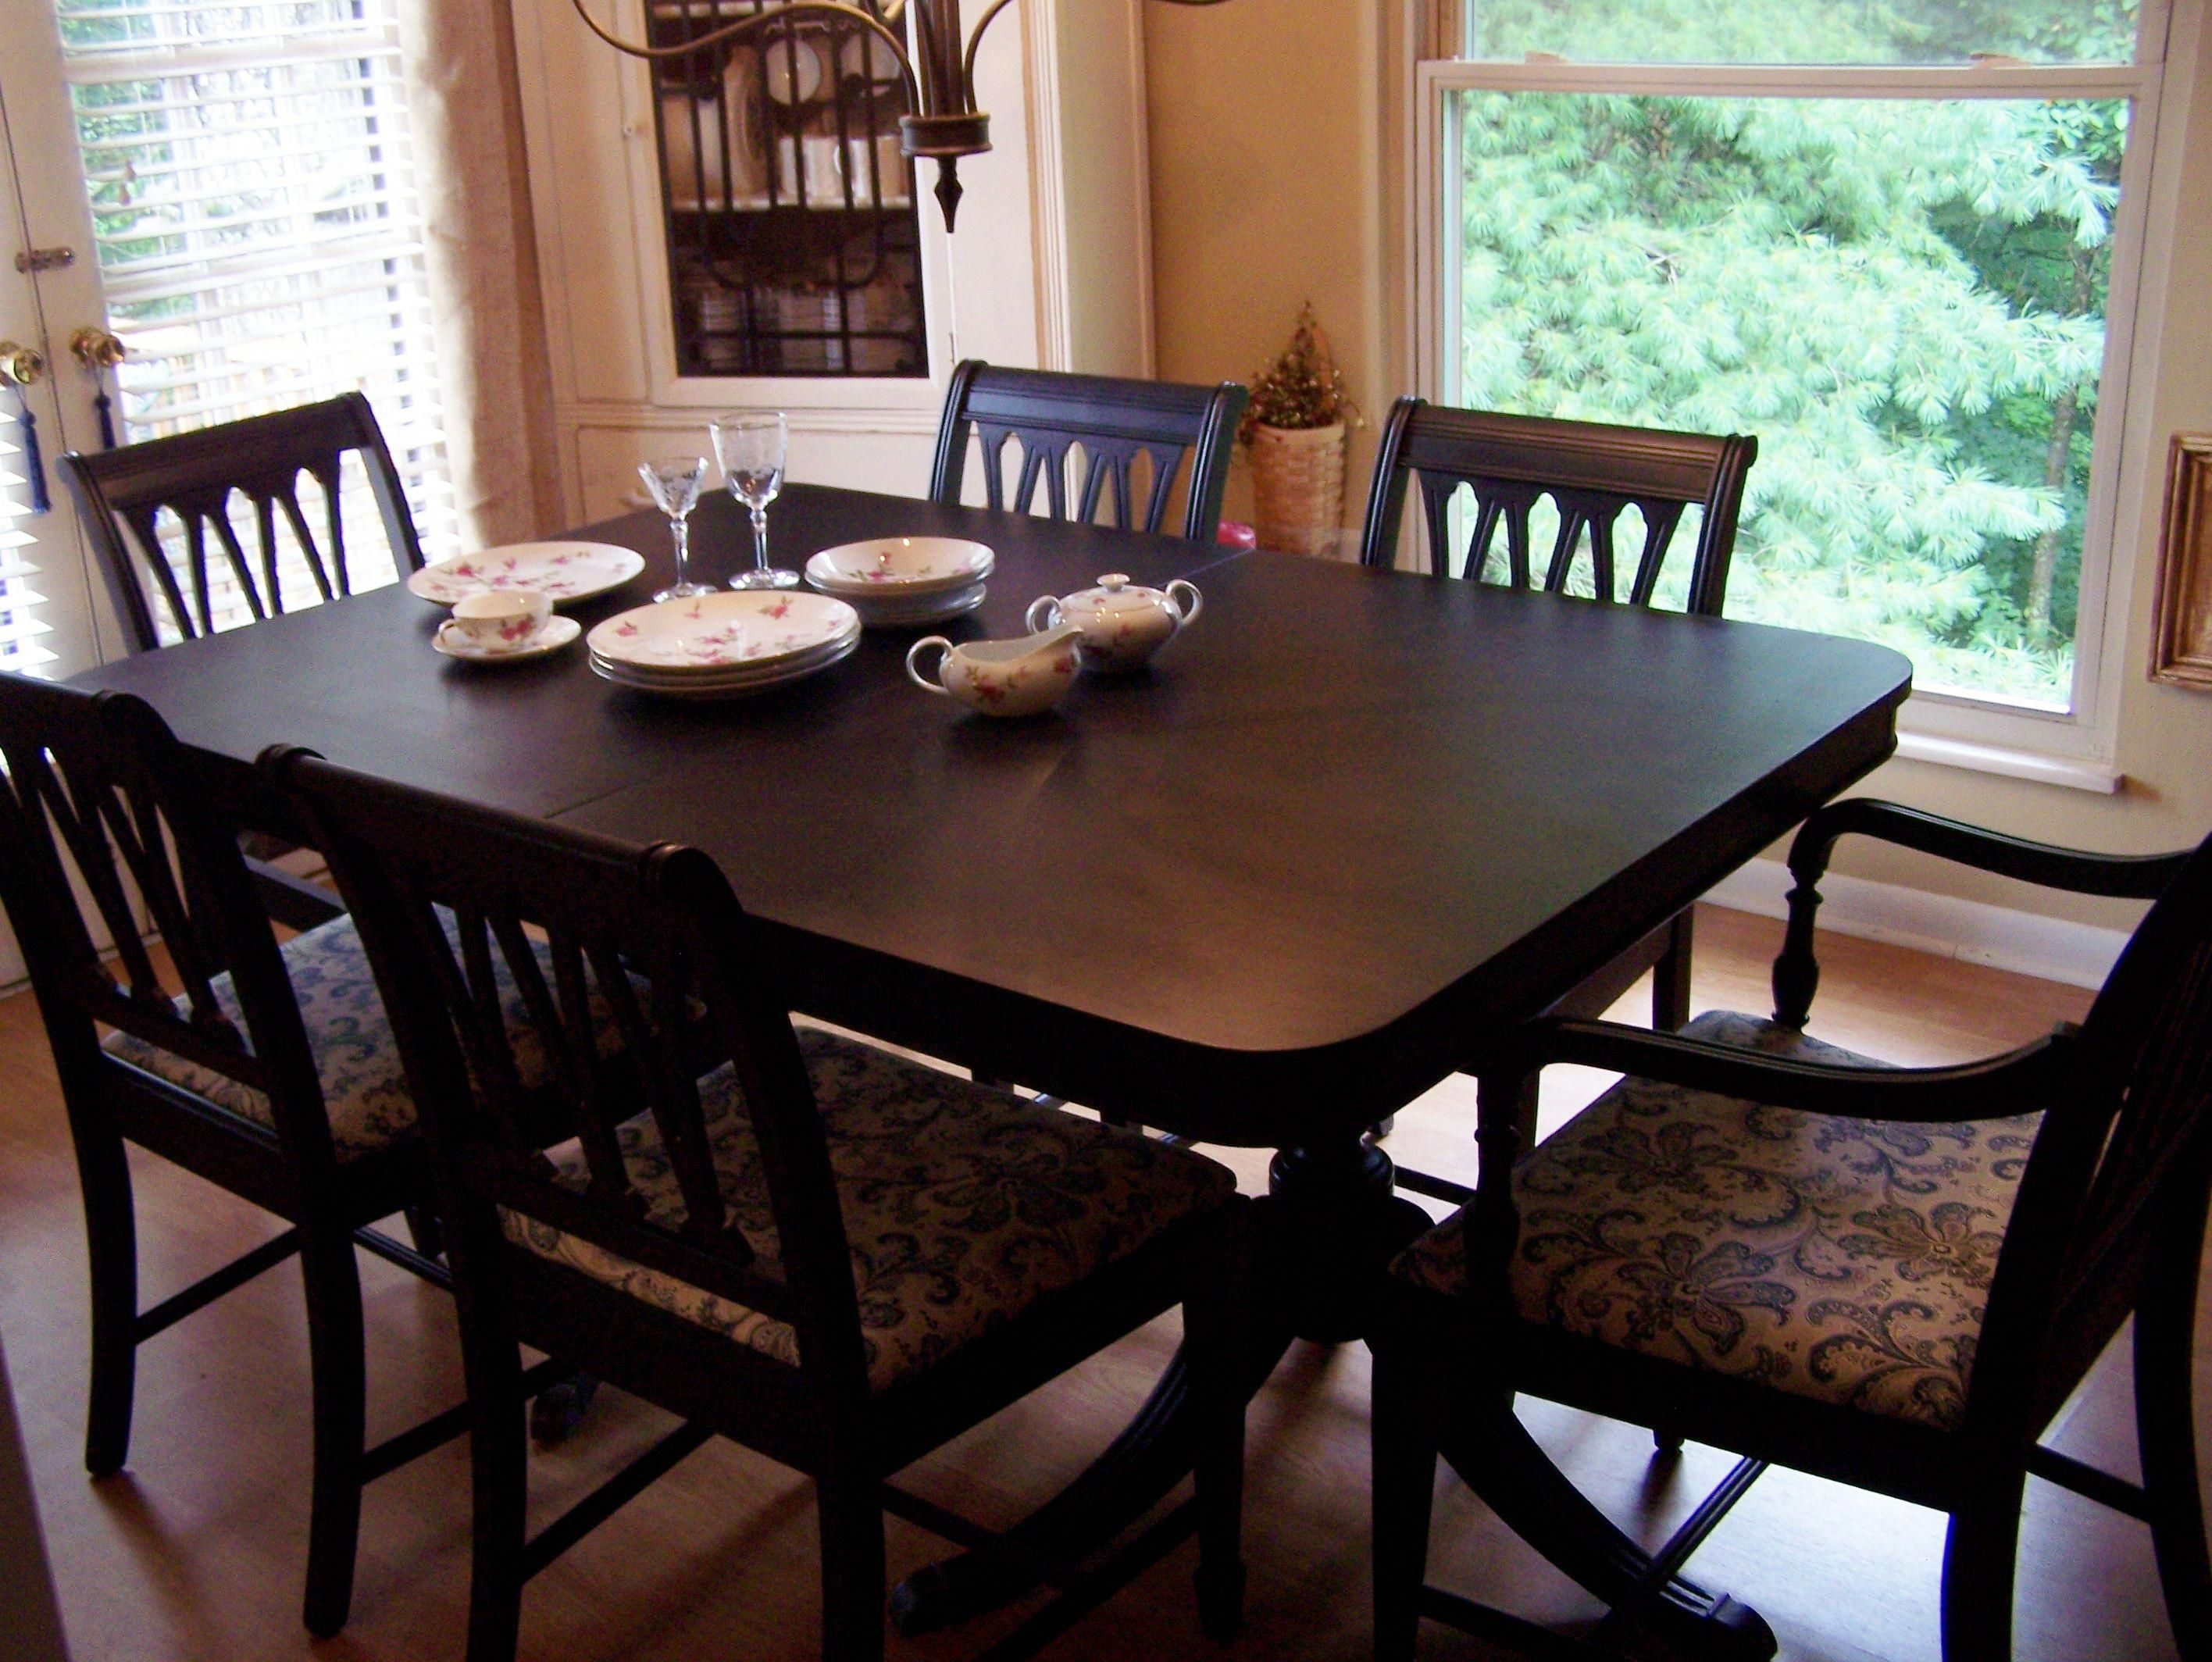 Head To The Webpage To Read More On Dining Room Furniture Arrangement Just Click On Dining Room Furniture Arrangement Antique Dining Rooms Painted Dining Table